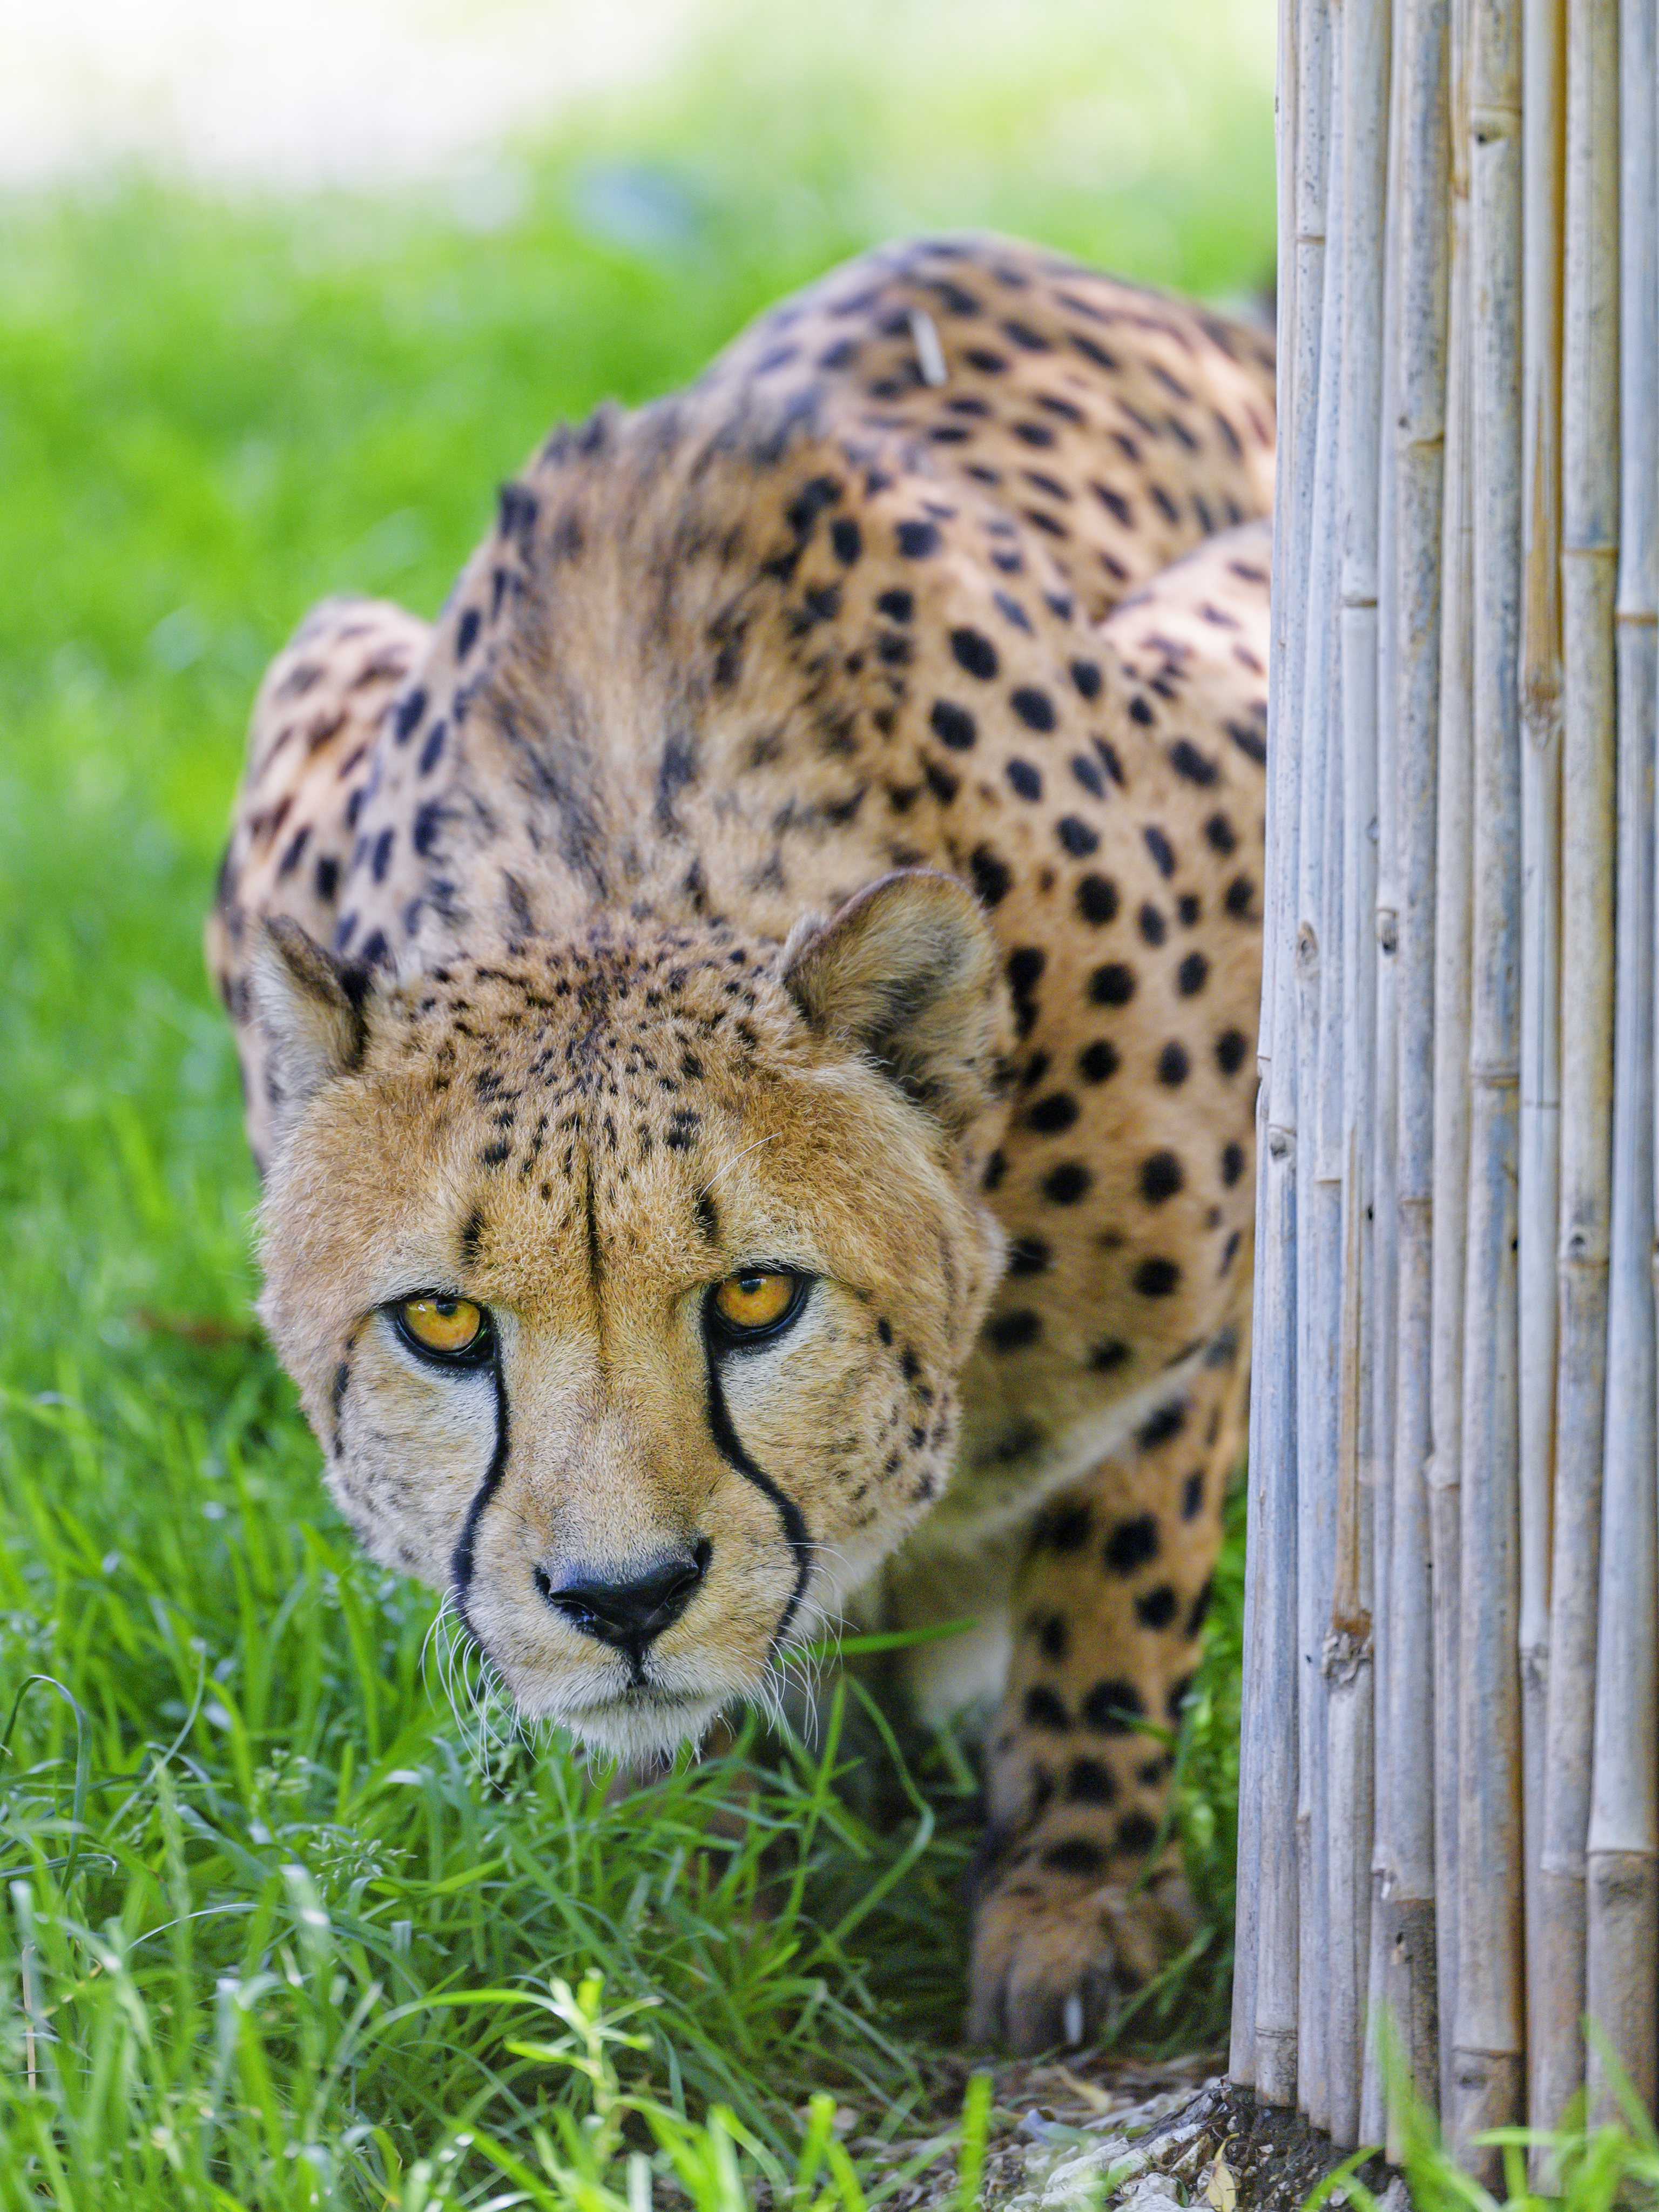 69953 download wallpaper Animals, Cheetah, Predator, Big Cat, Sight, Opinion screensavers and pictures for free